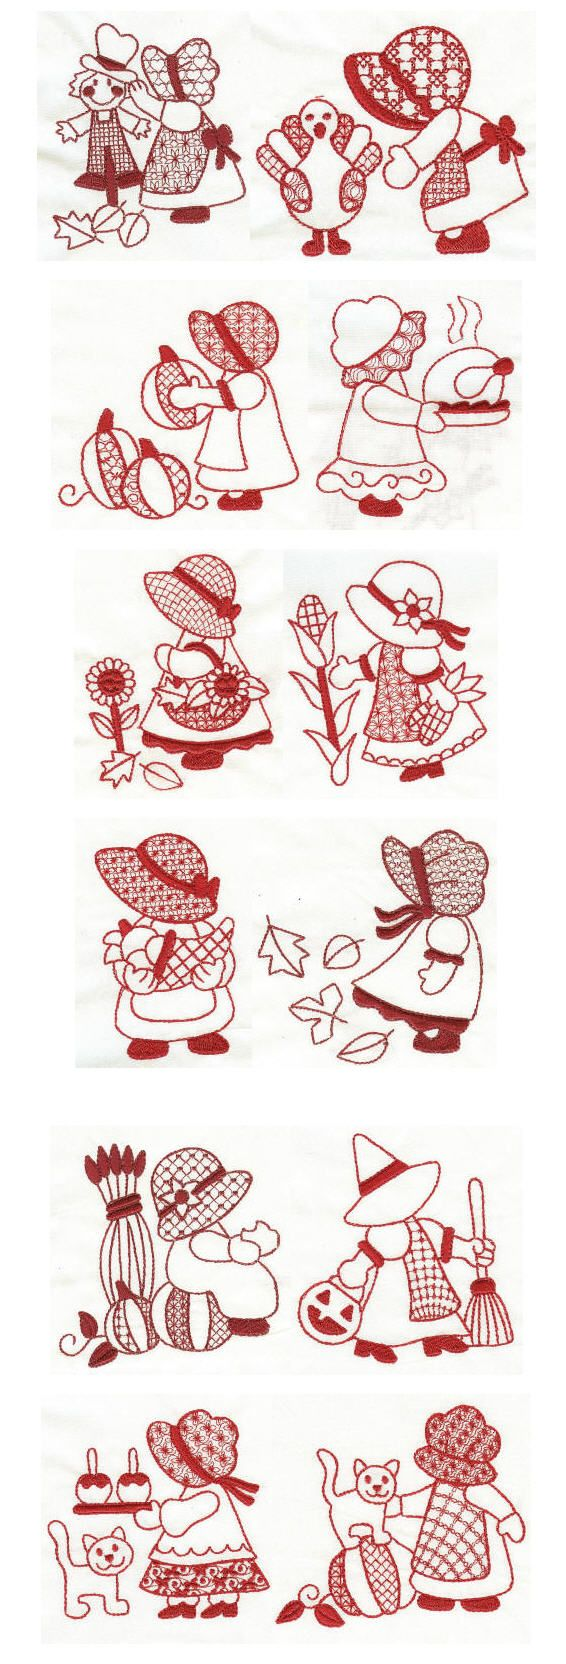 83 best projects to try images on pinterest embroidery patterns free hand stitching patterns embroidery sunbonnet sue free embroidery origami bankloansurffo Gallery